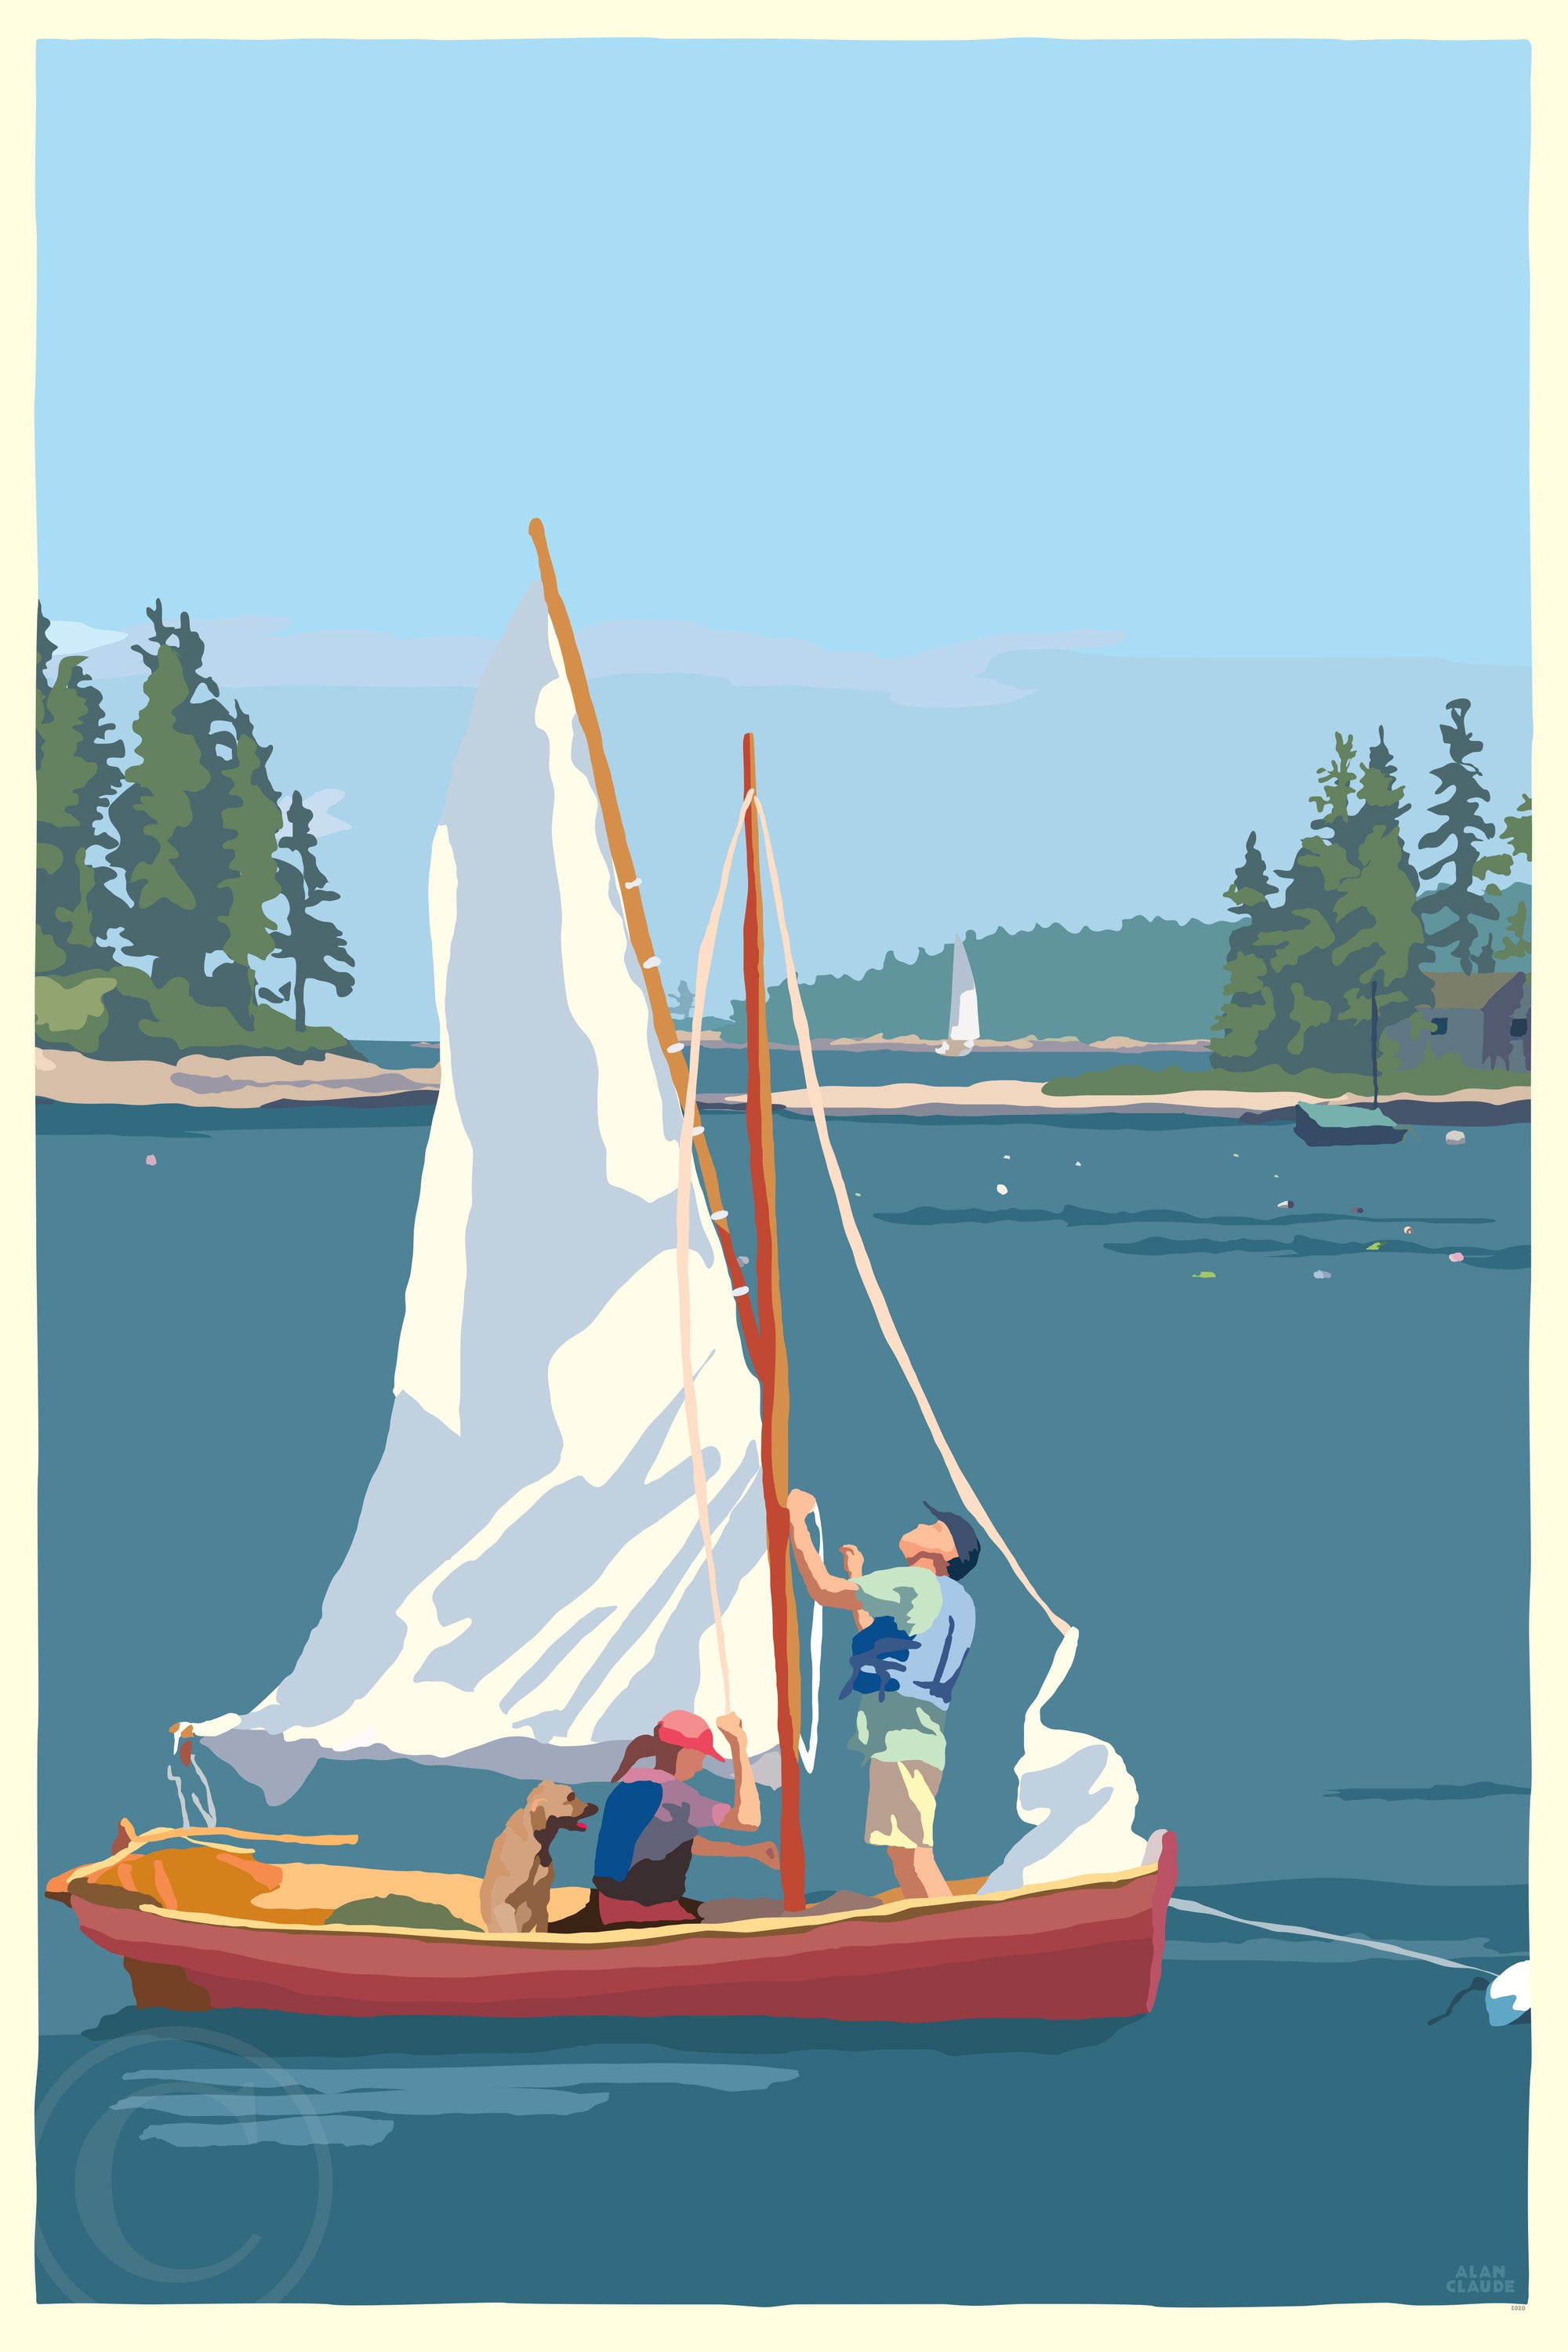 "Hoist The Sail Art Print 24"" x 36"" Wall Poster By Alan Claude"